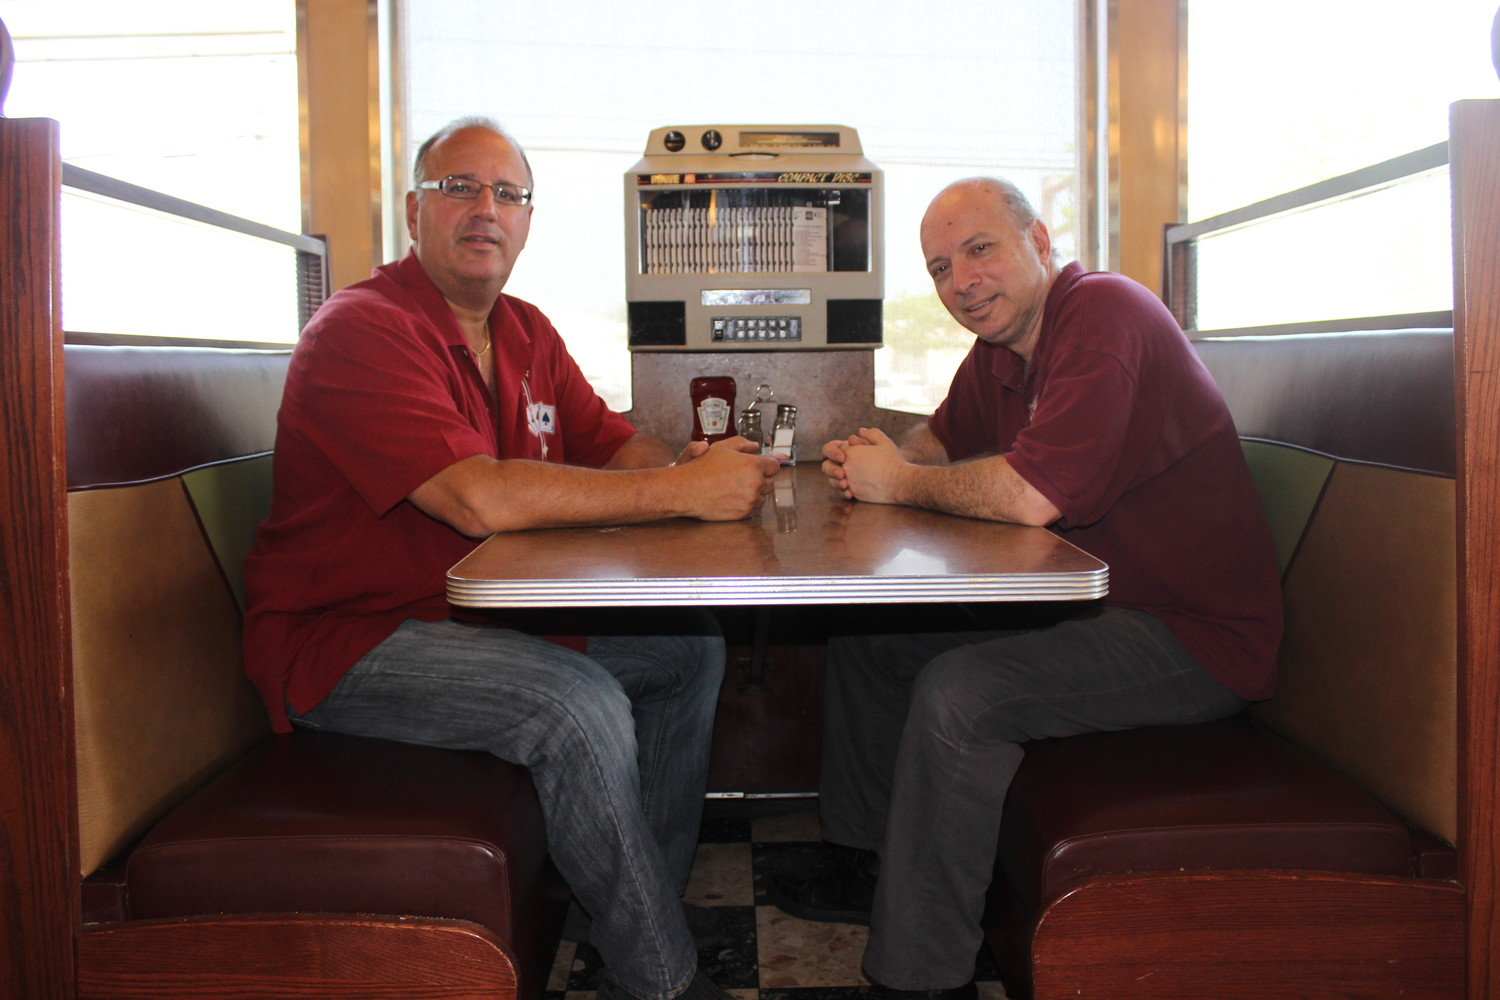 Mike Panagatos, 58, of East Meadow, right, and his brother Dan, 56, have owned the Empress Diner for roughly 30 years. Their father, Sam, purchased it in 1967.